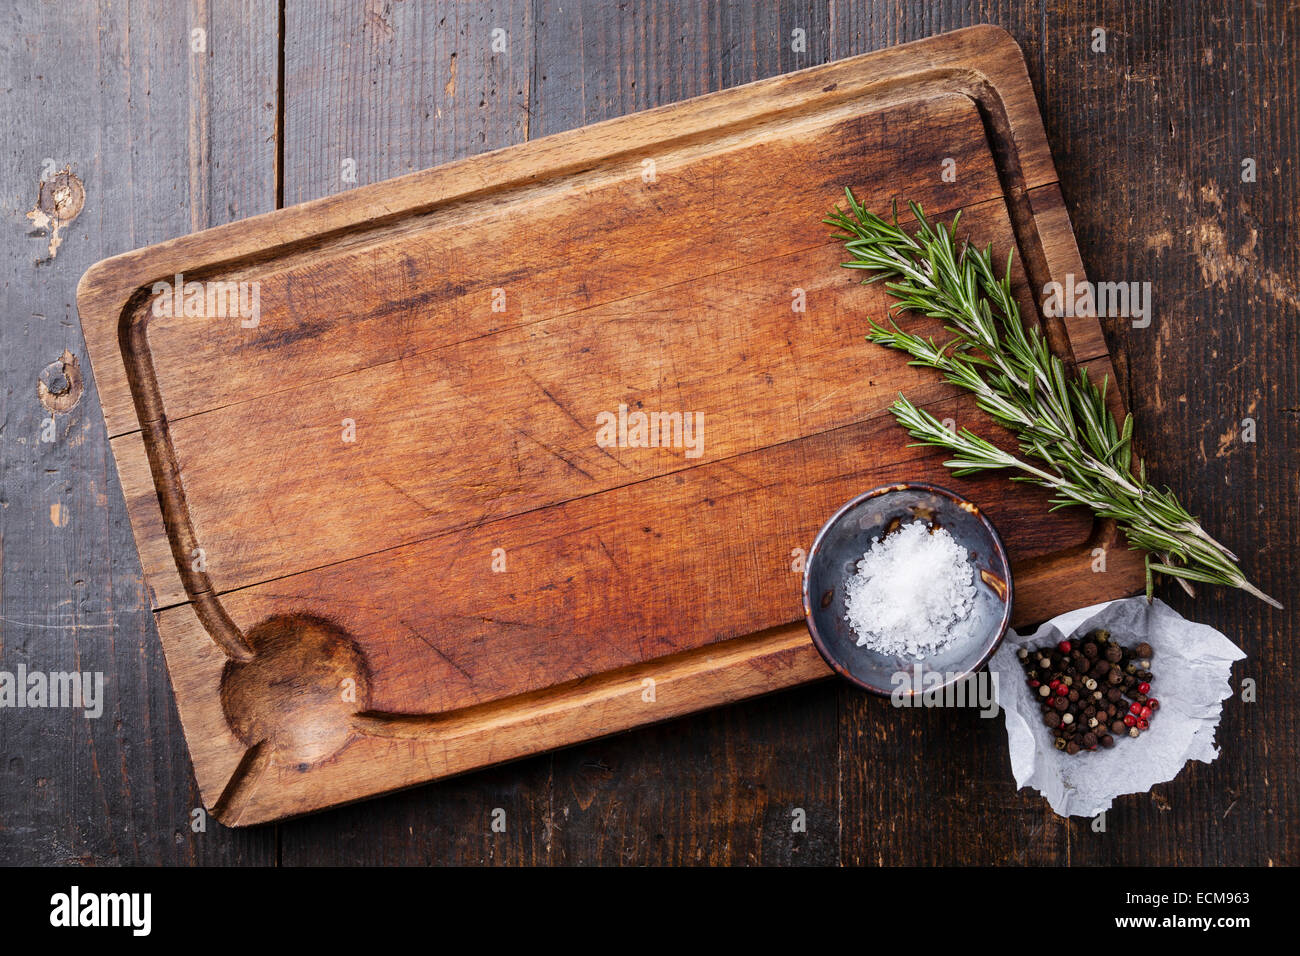 Different Types Of Cutting Boards Chopping Board Seasonings And Rosemary On Dark Wooden